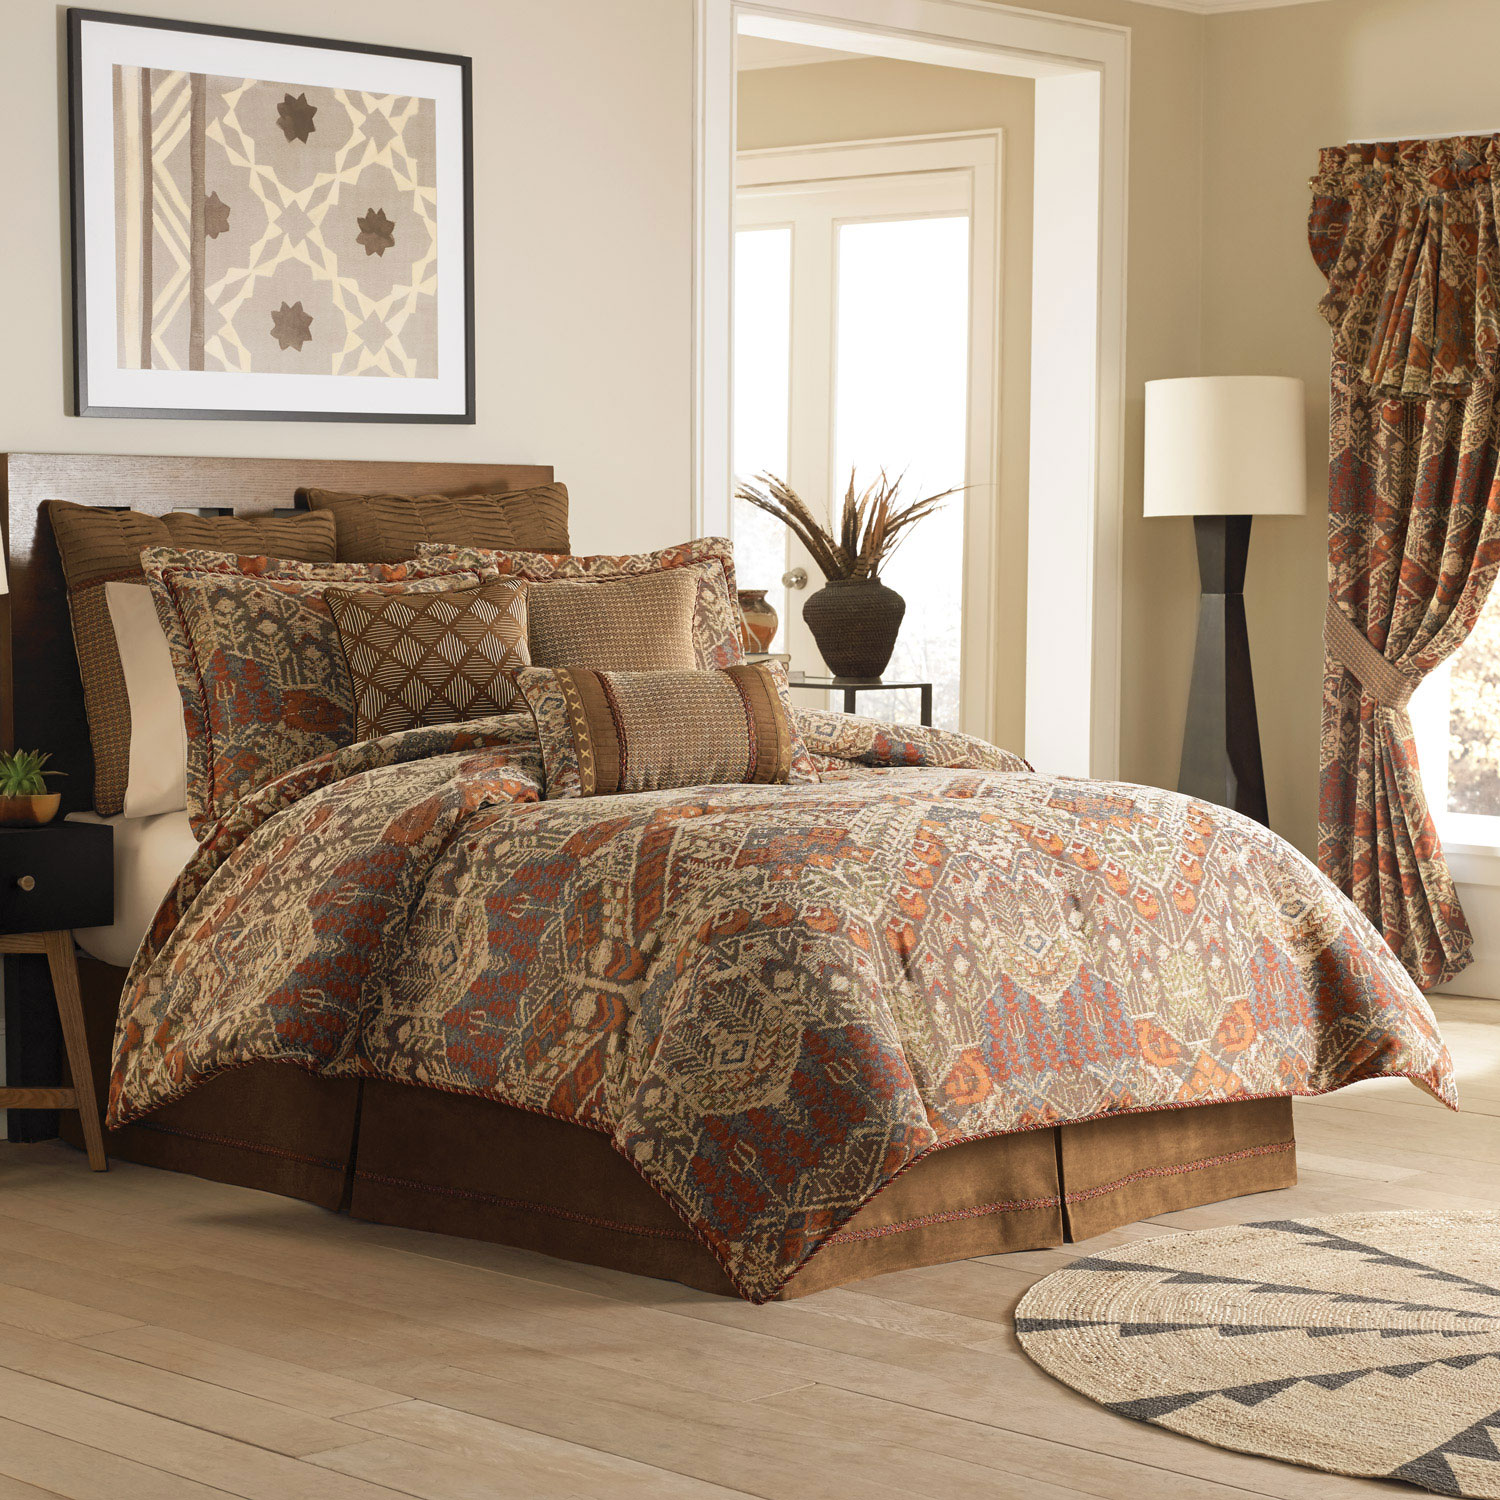 Salida by croscill home fashions for Designer linens and home fashions